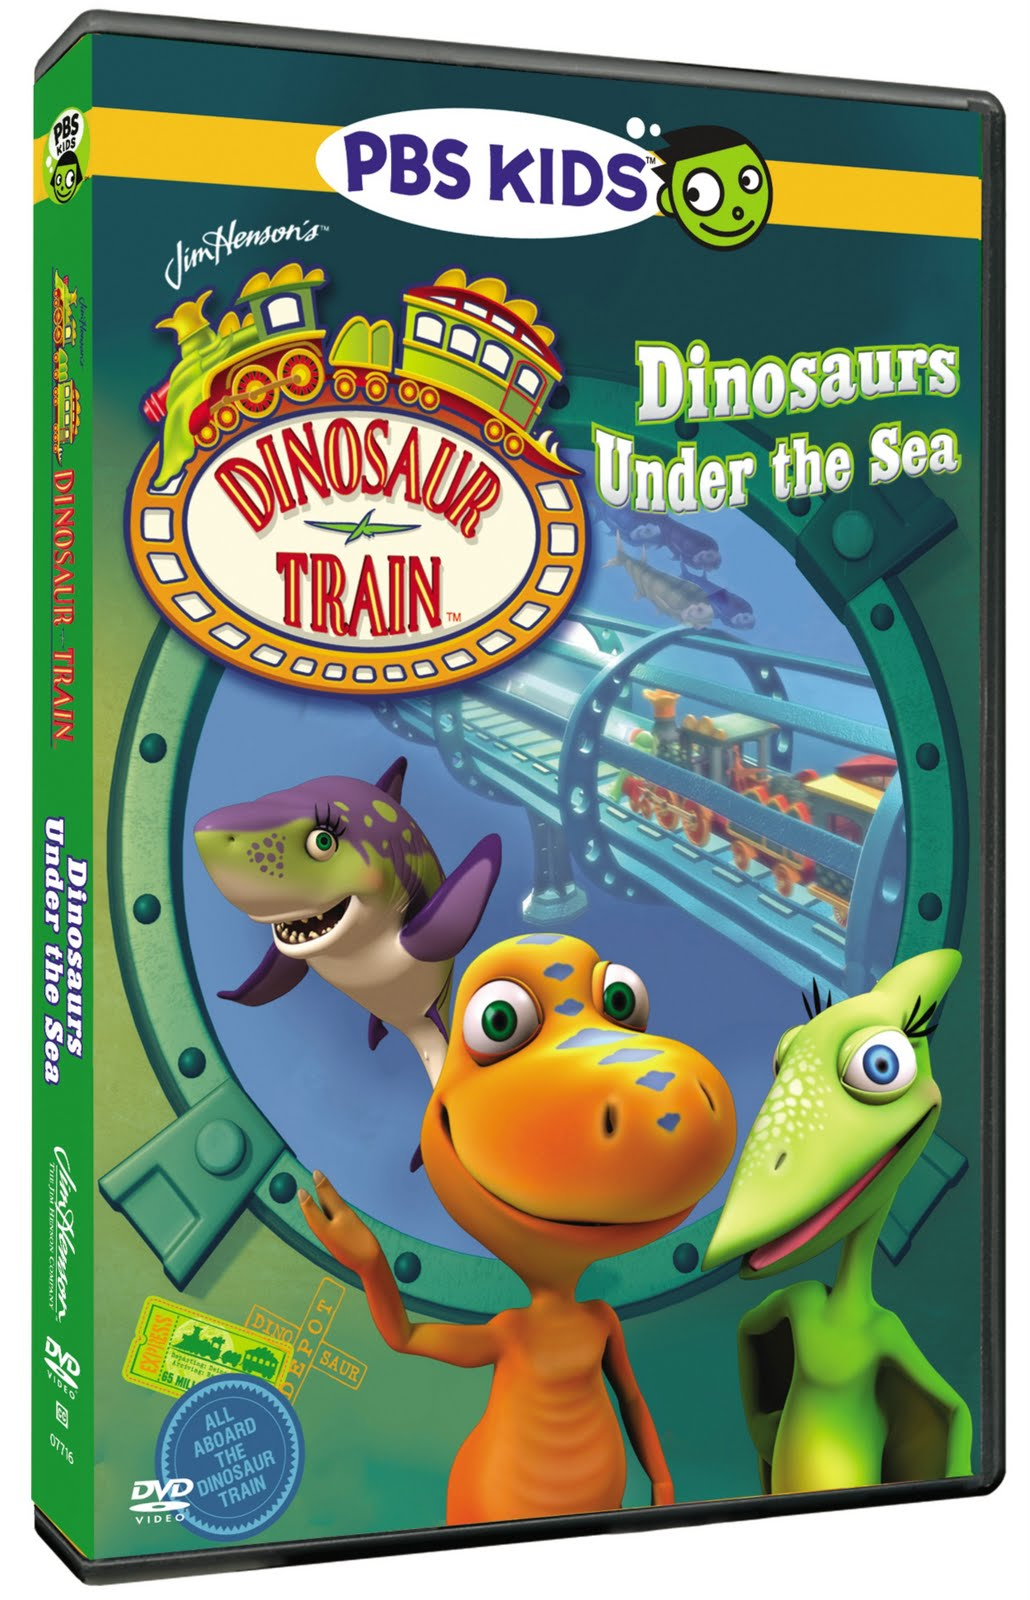 L.A. Story: And the 'Dinosaur Train' DVD goes to ...